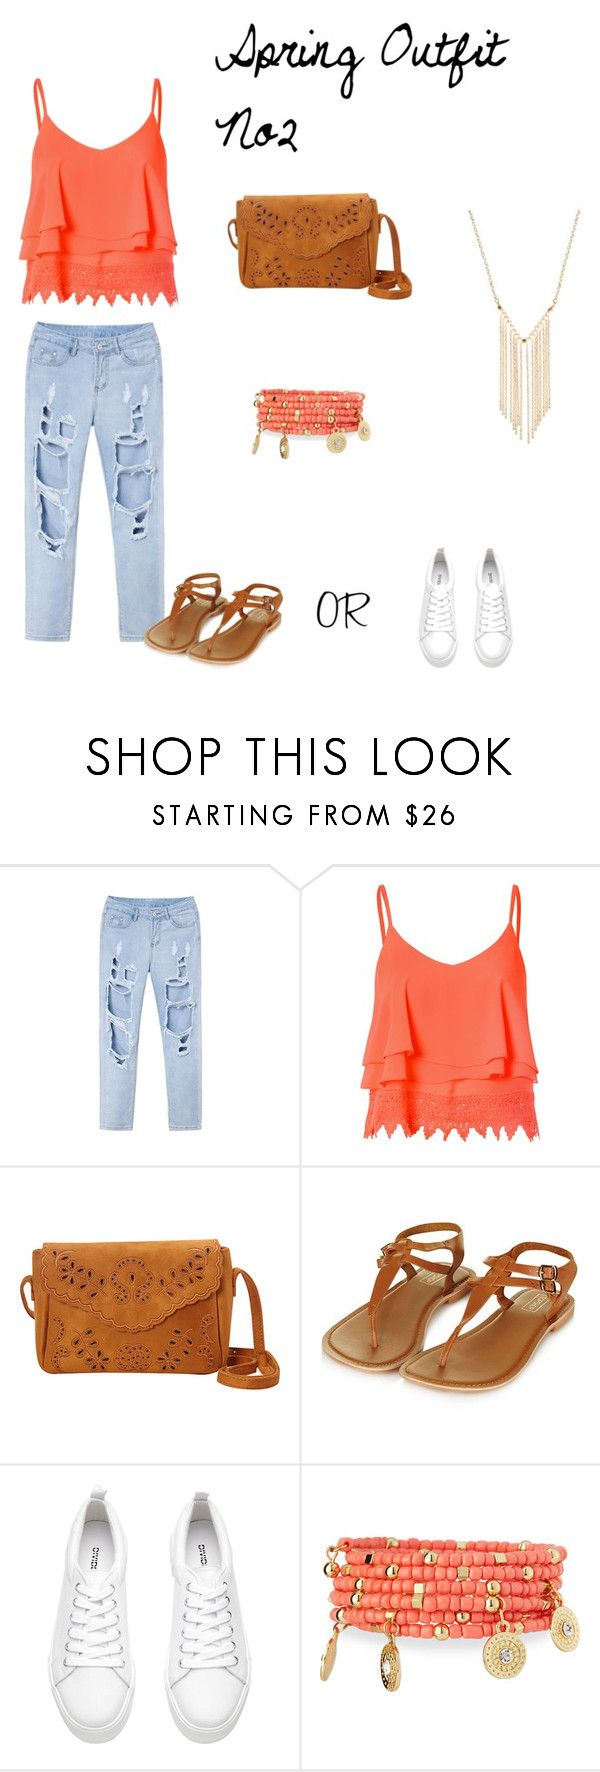 Spring Outfit No2 by vas0an on Polyvore featuring Glamorous, Topshop, Emily & Ashley and Gemelli